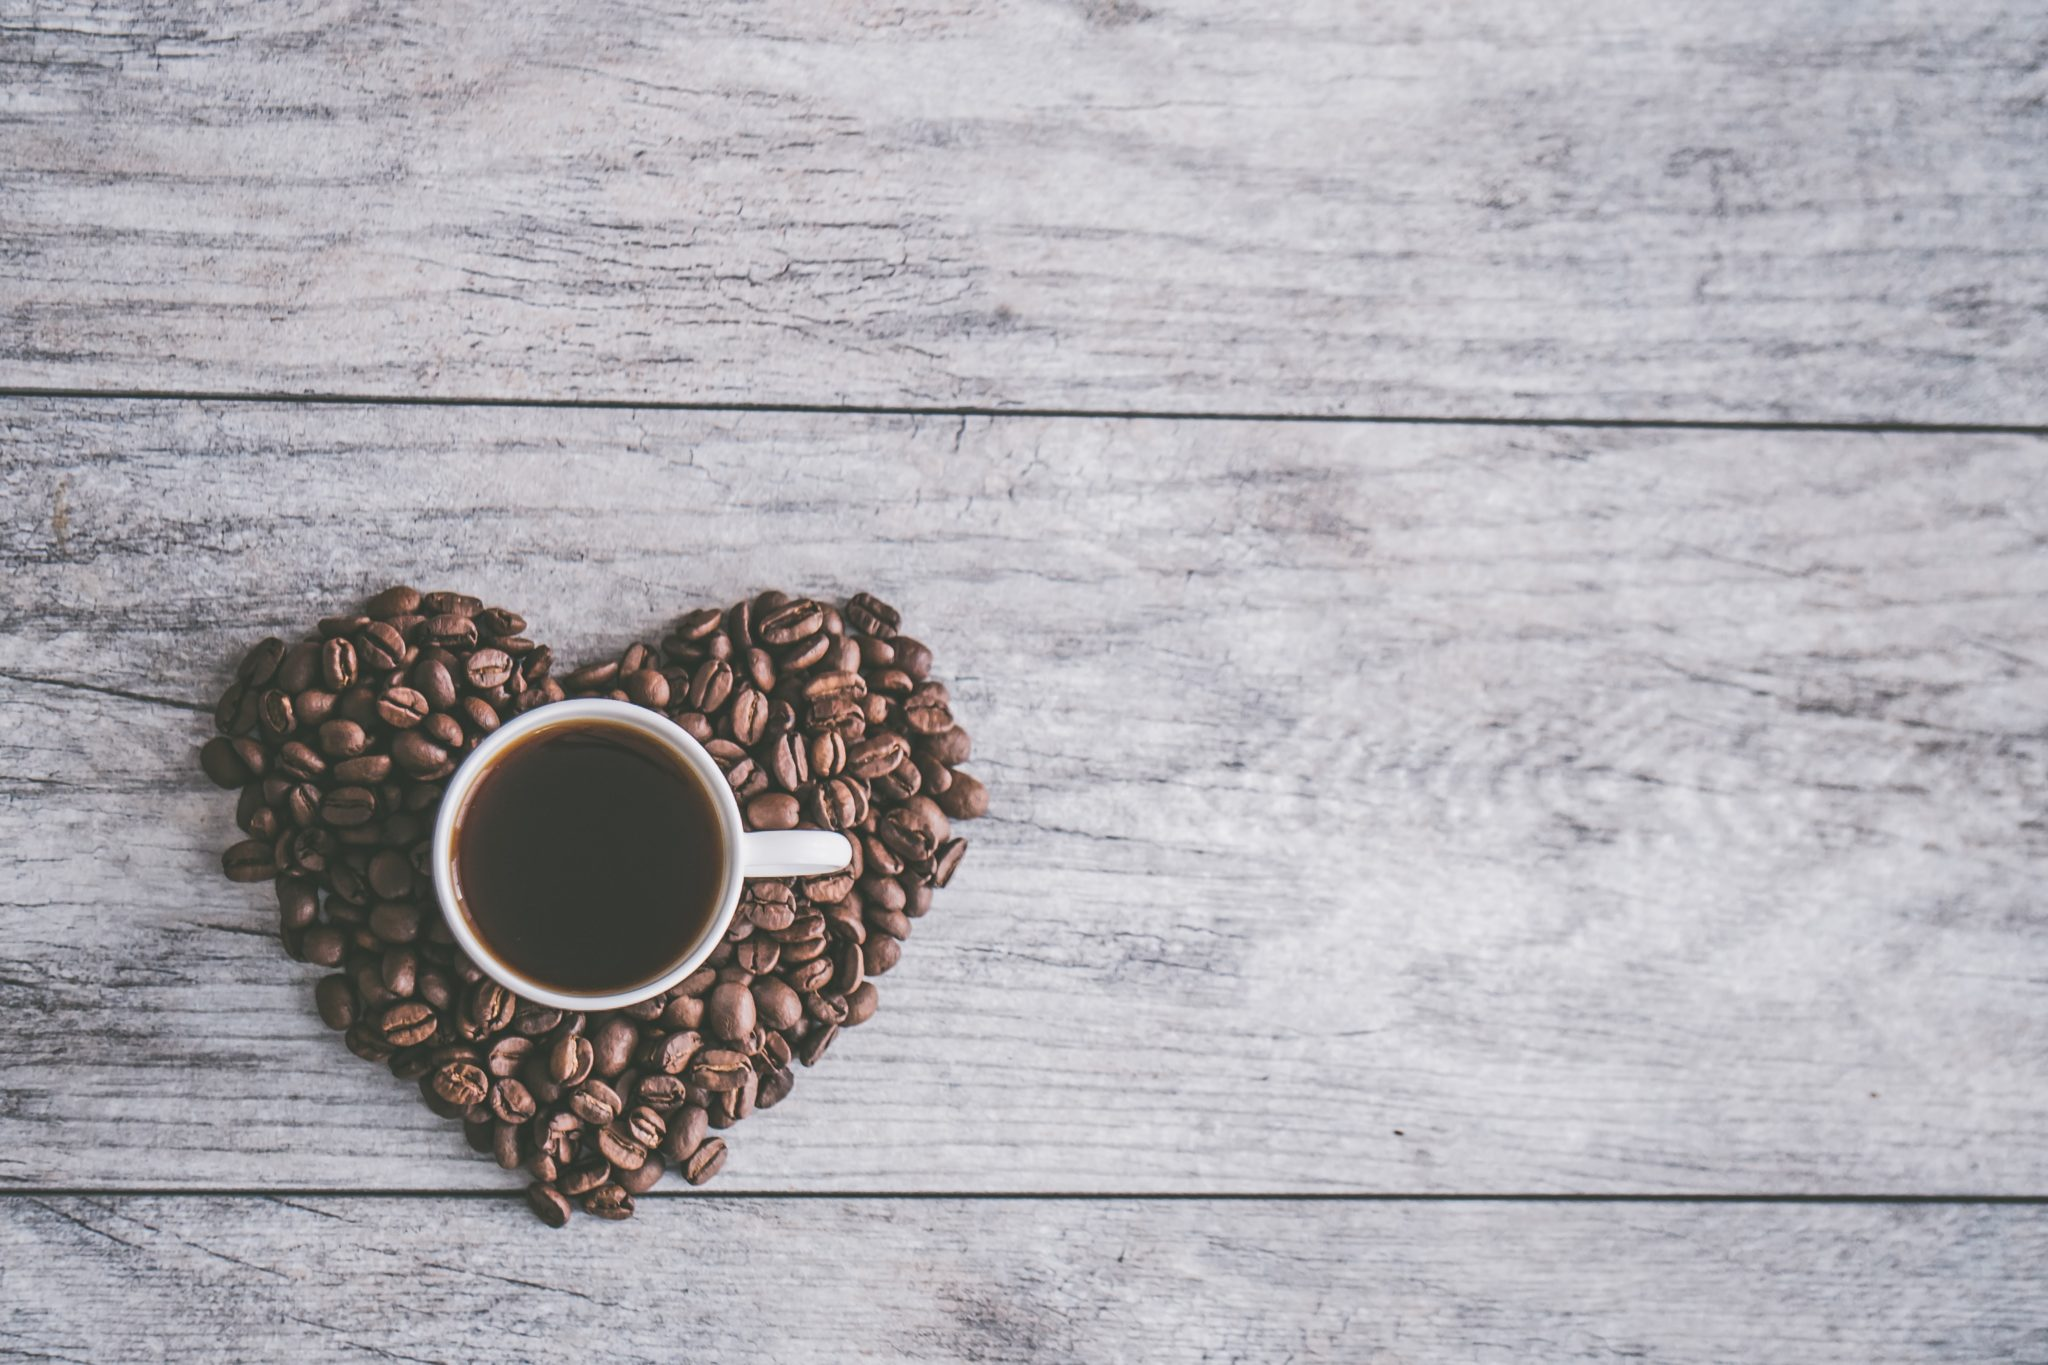 birds eye view of coffee as part of elimination diet for thin uterine lining